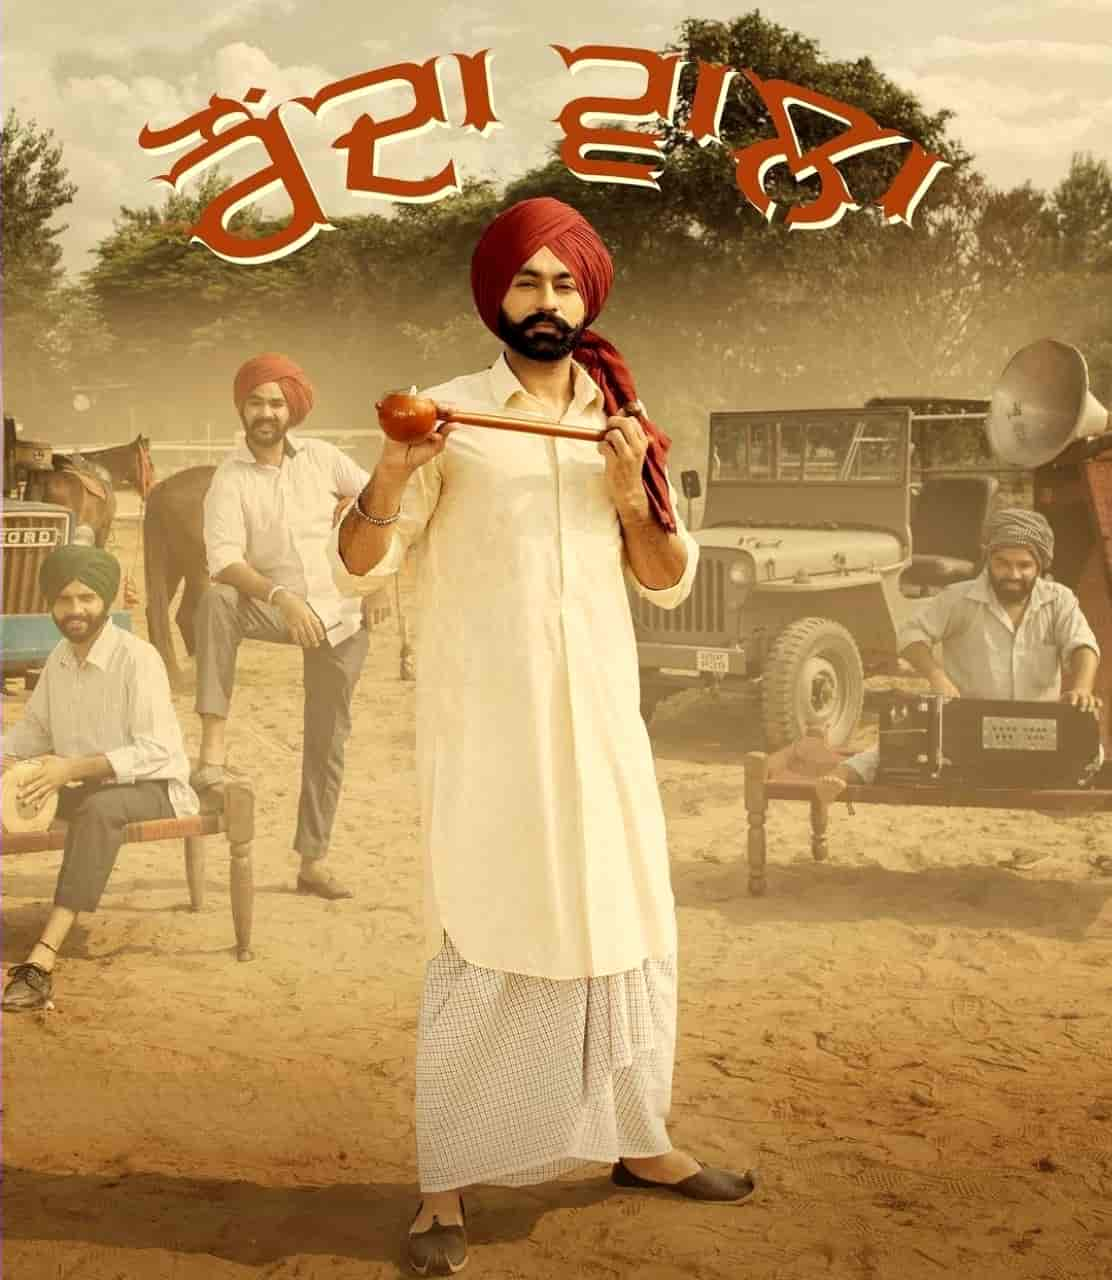 Ronda Wala Punjabi Song Image Features Tarsem Jassar and Sruishty Mann